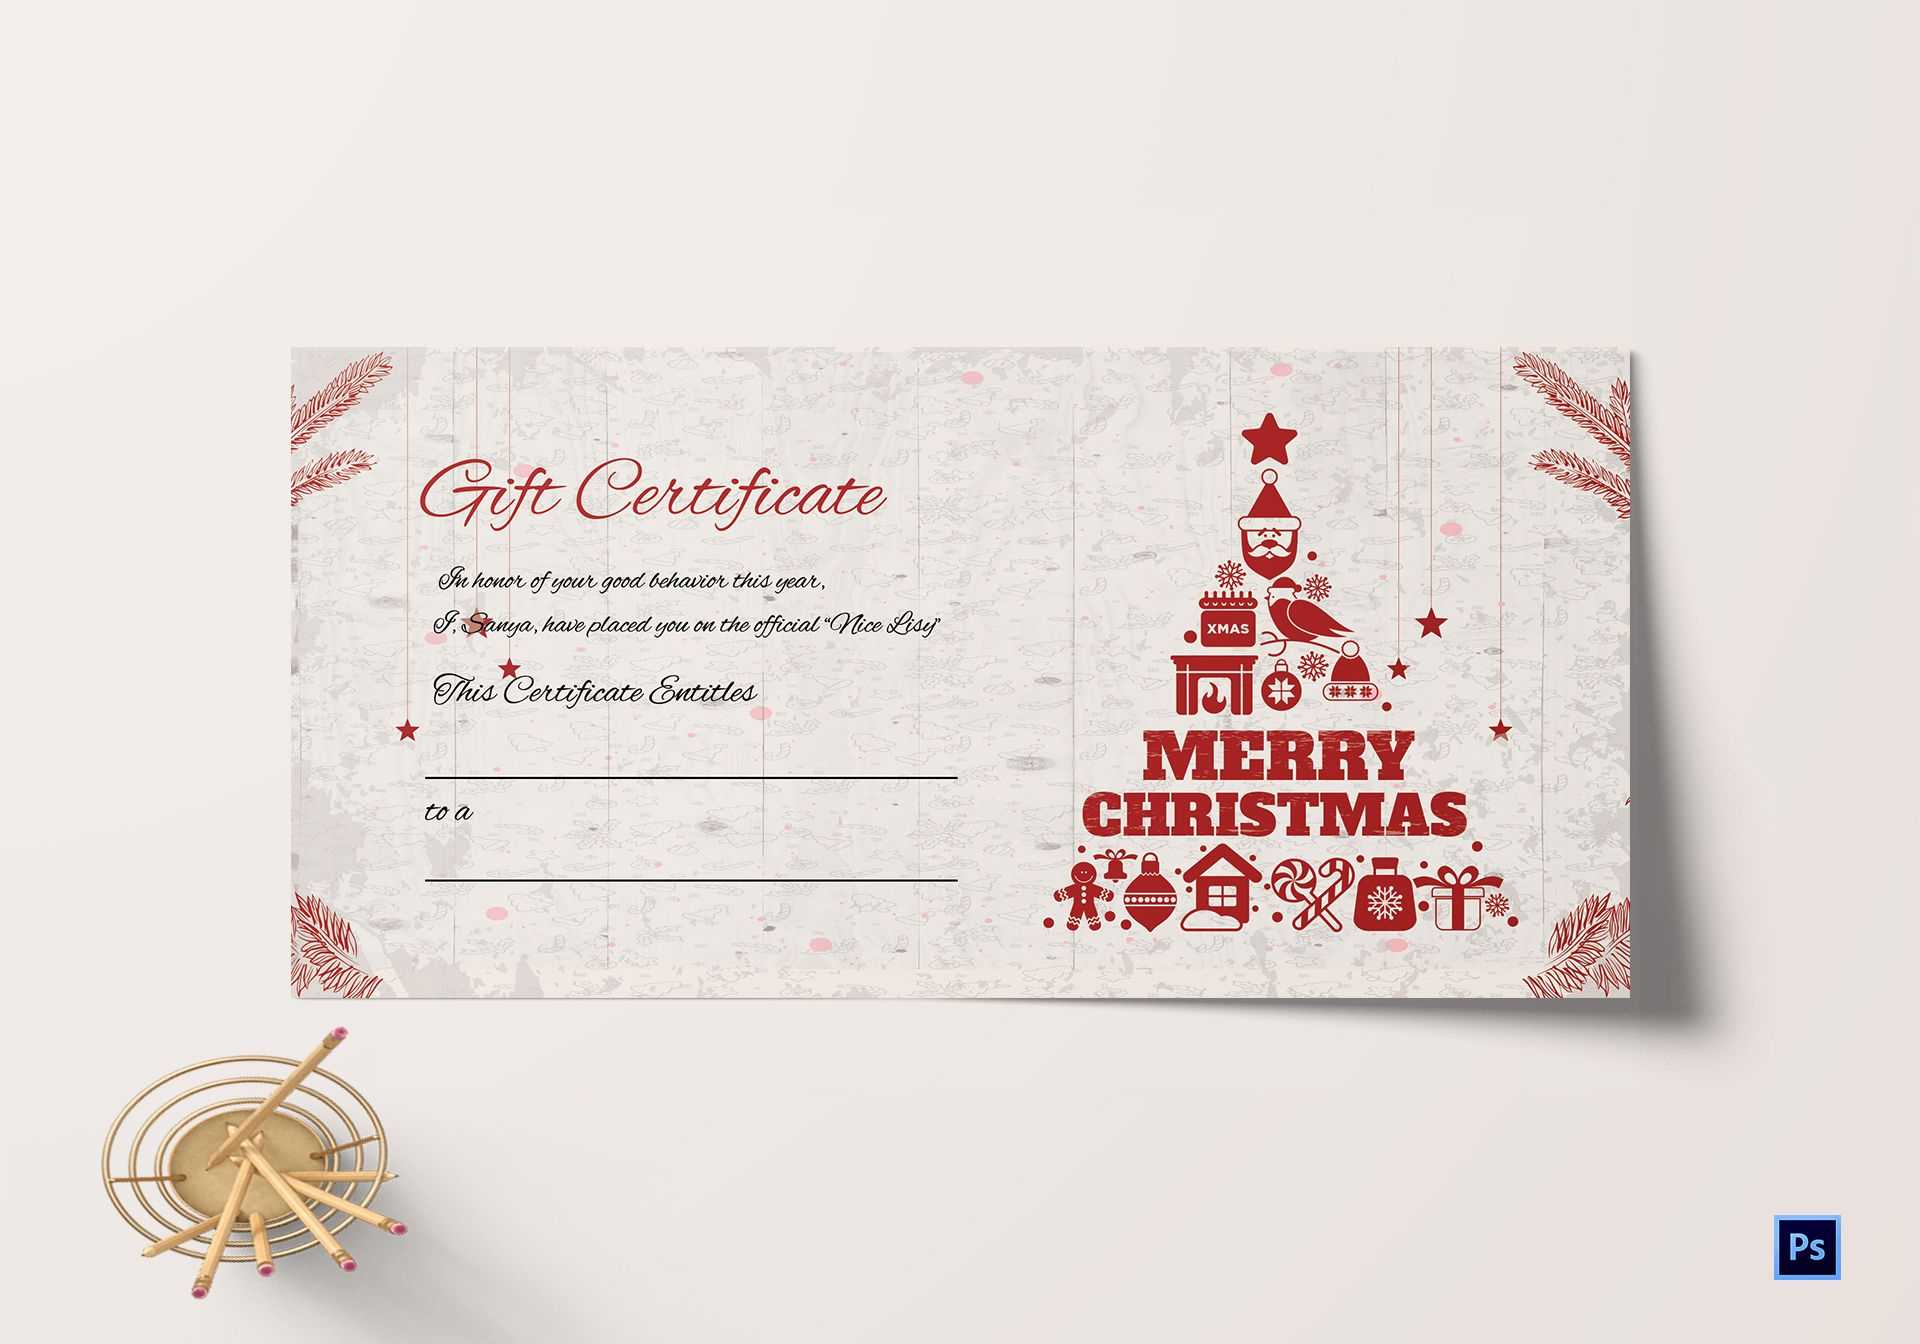 Merry Christmas Gift Certificate Throughout Merry Christmas Gift Certificate Templates